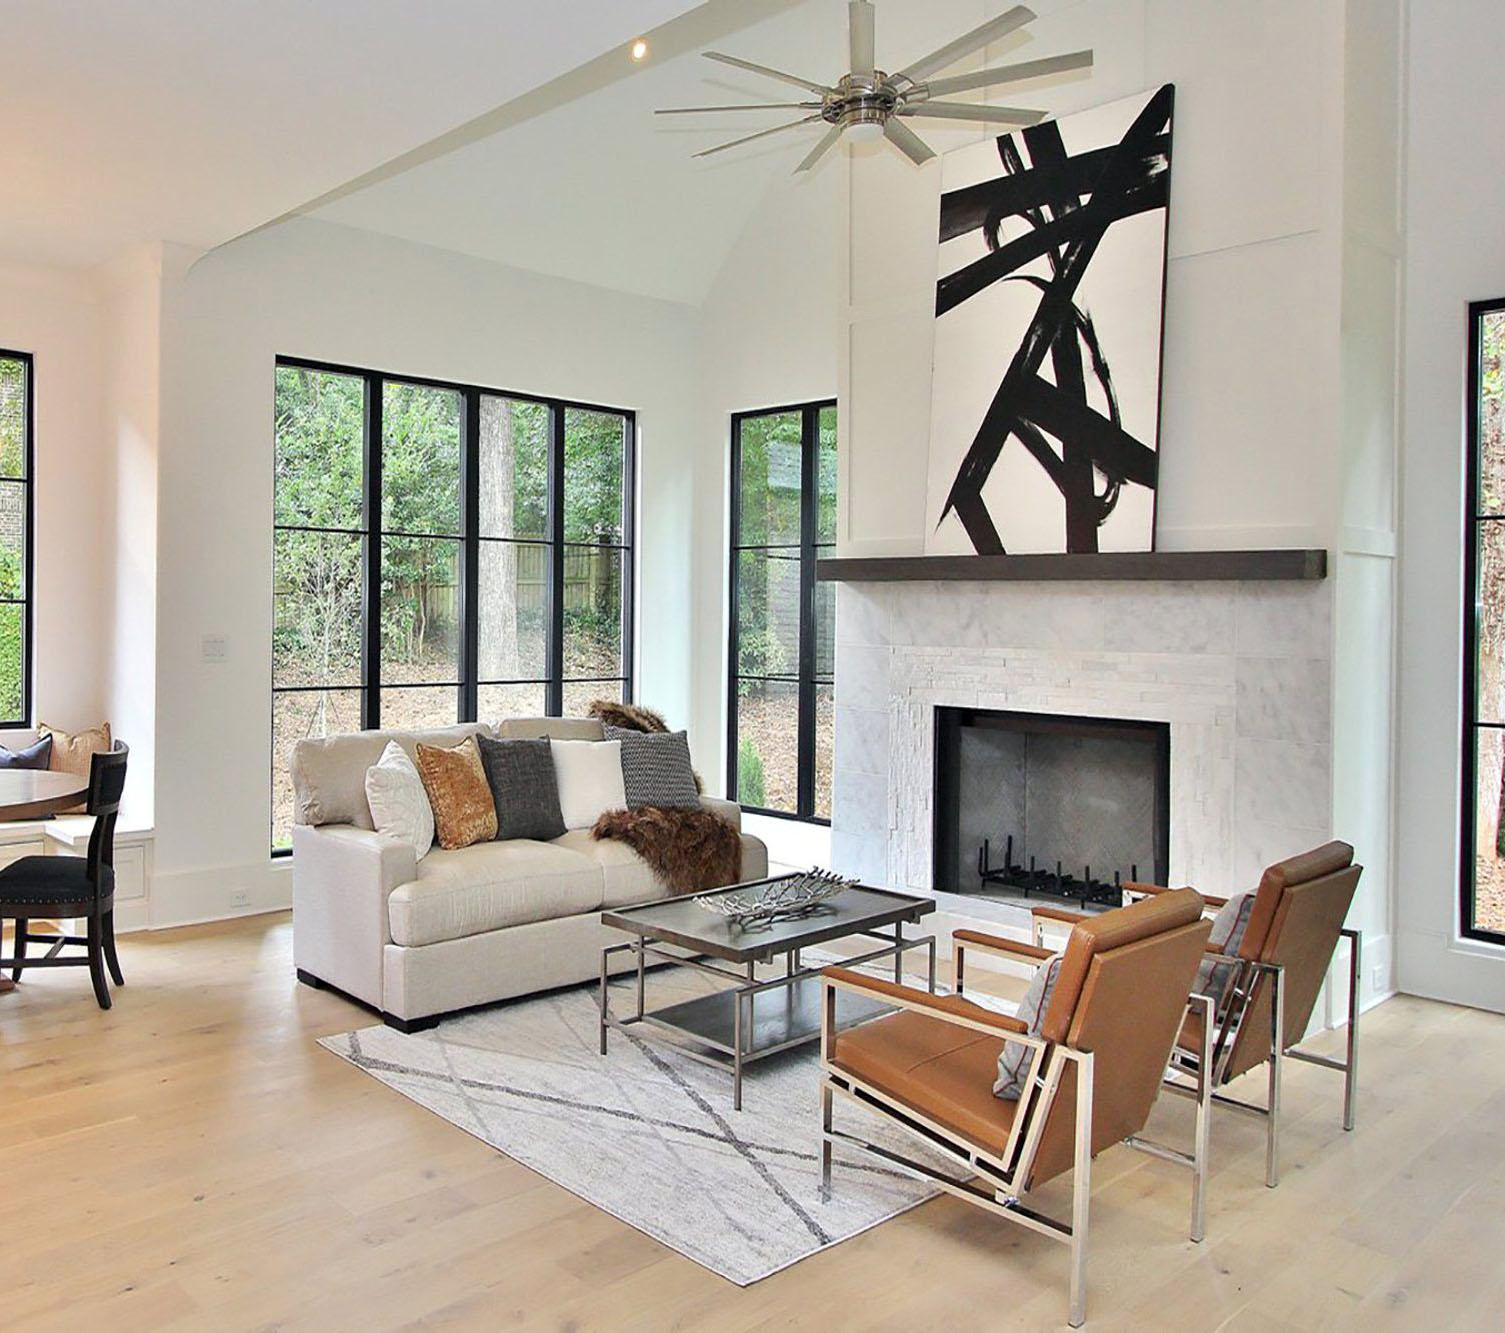 Modern style fireplace with a black and white design. fireplace design ideas.